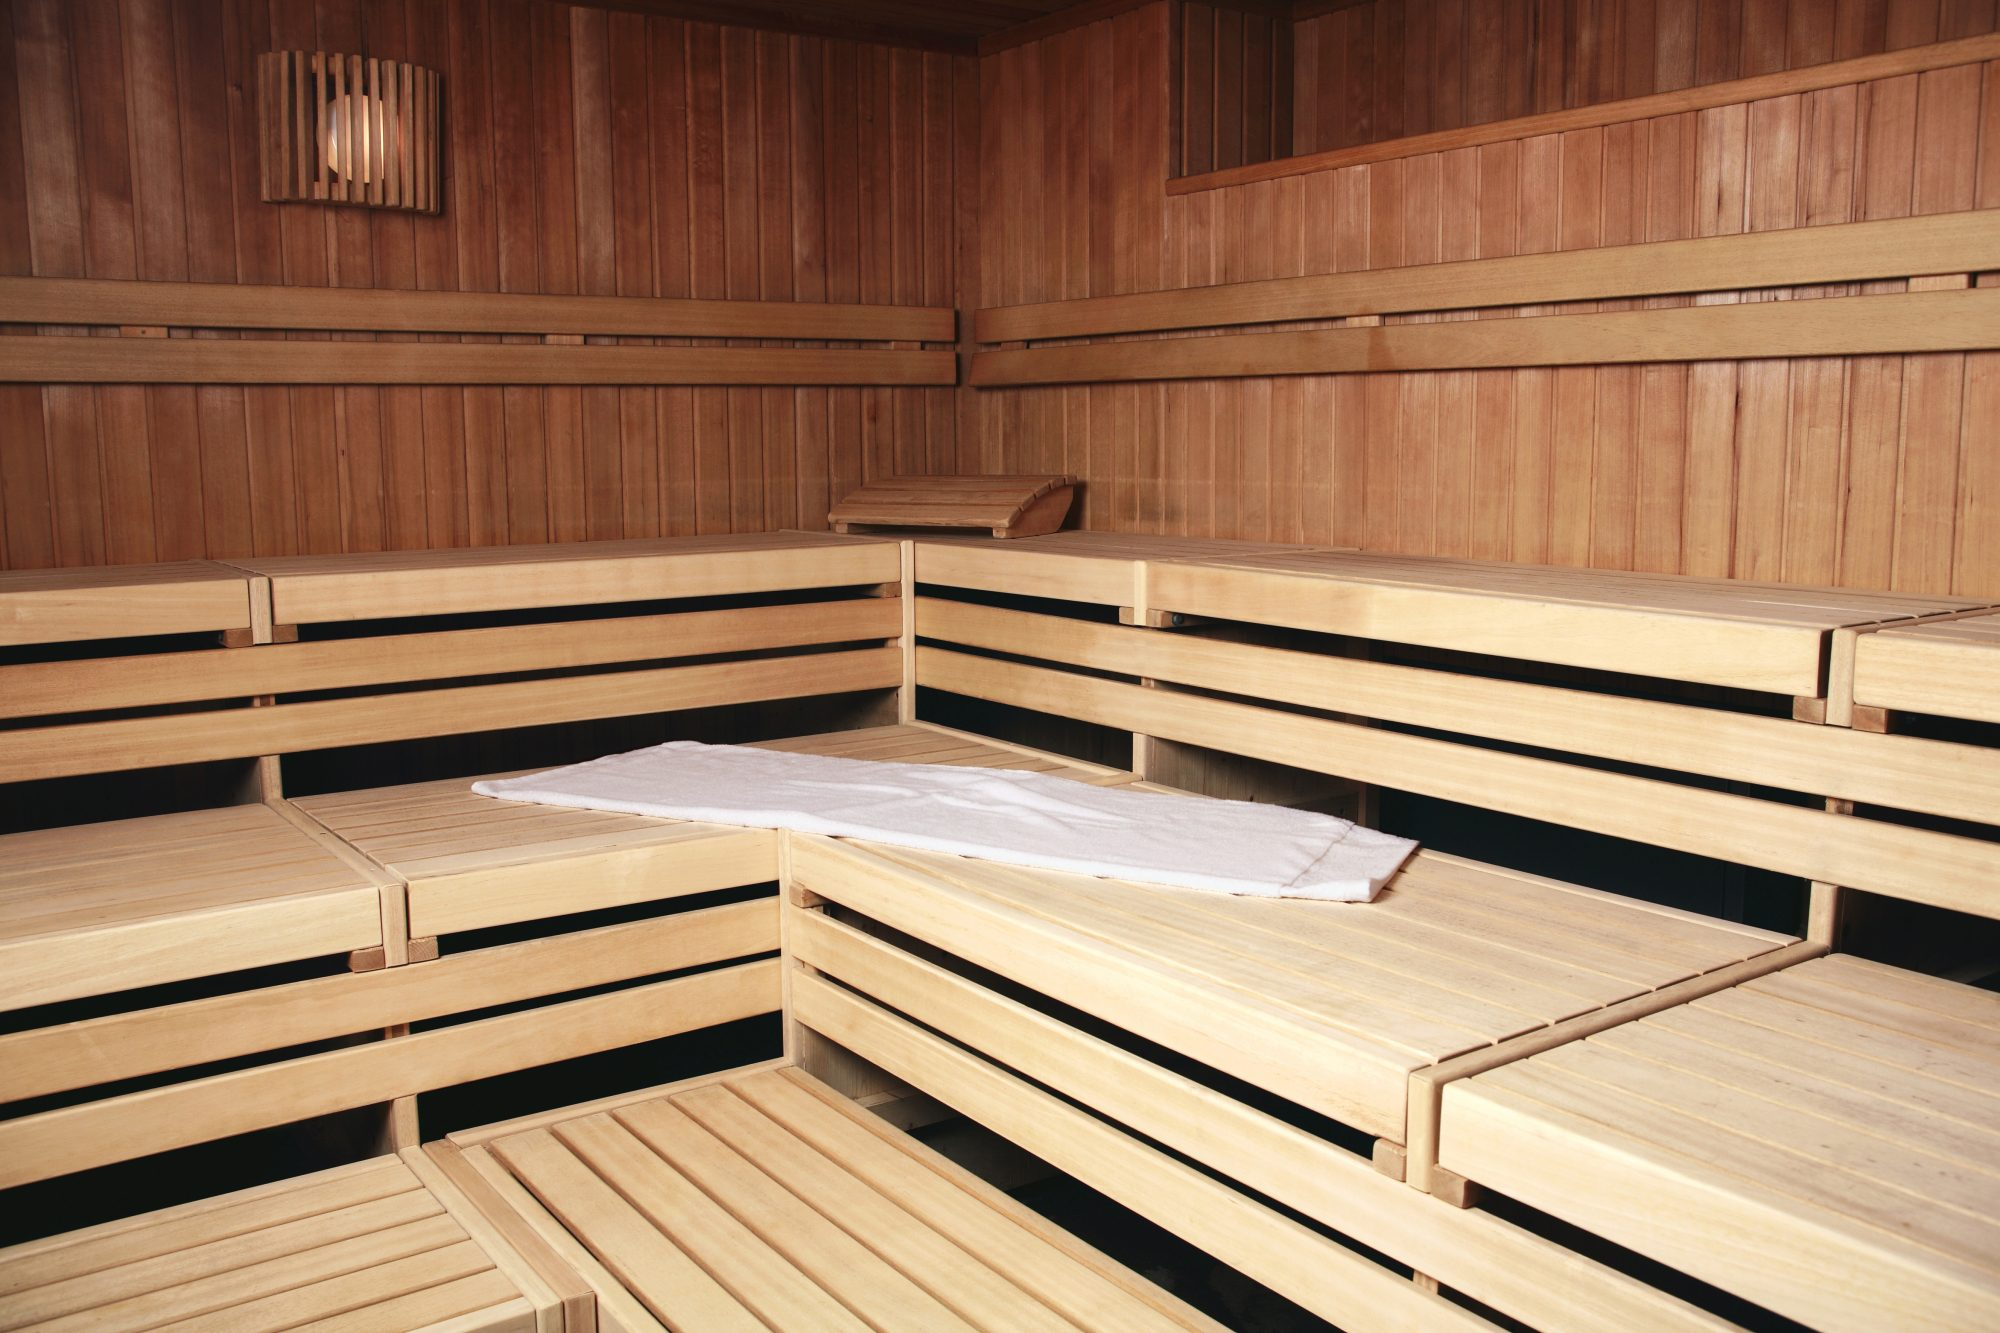 Benches in wooden sauna